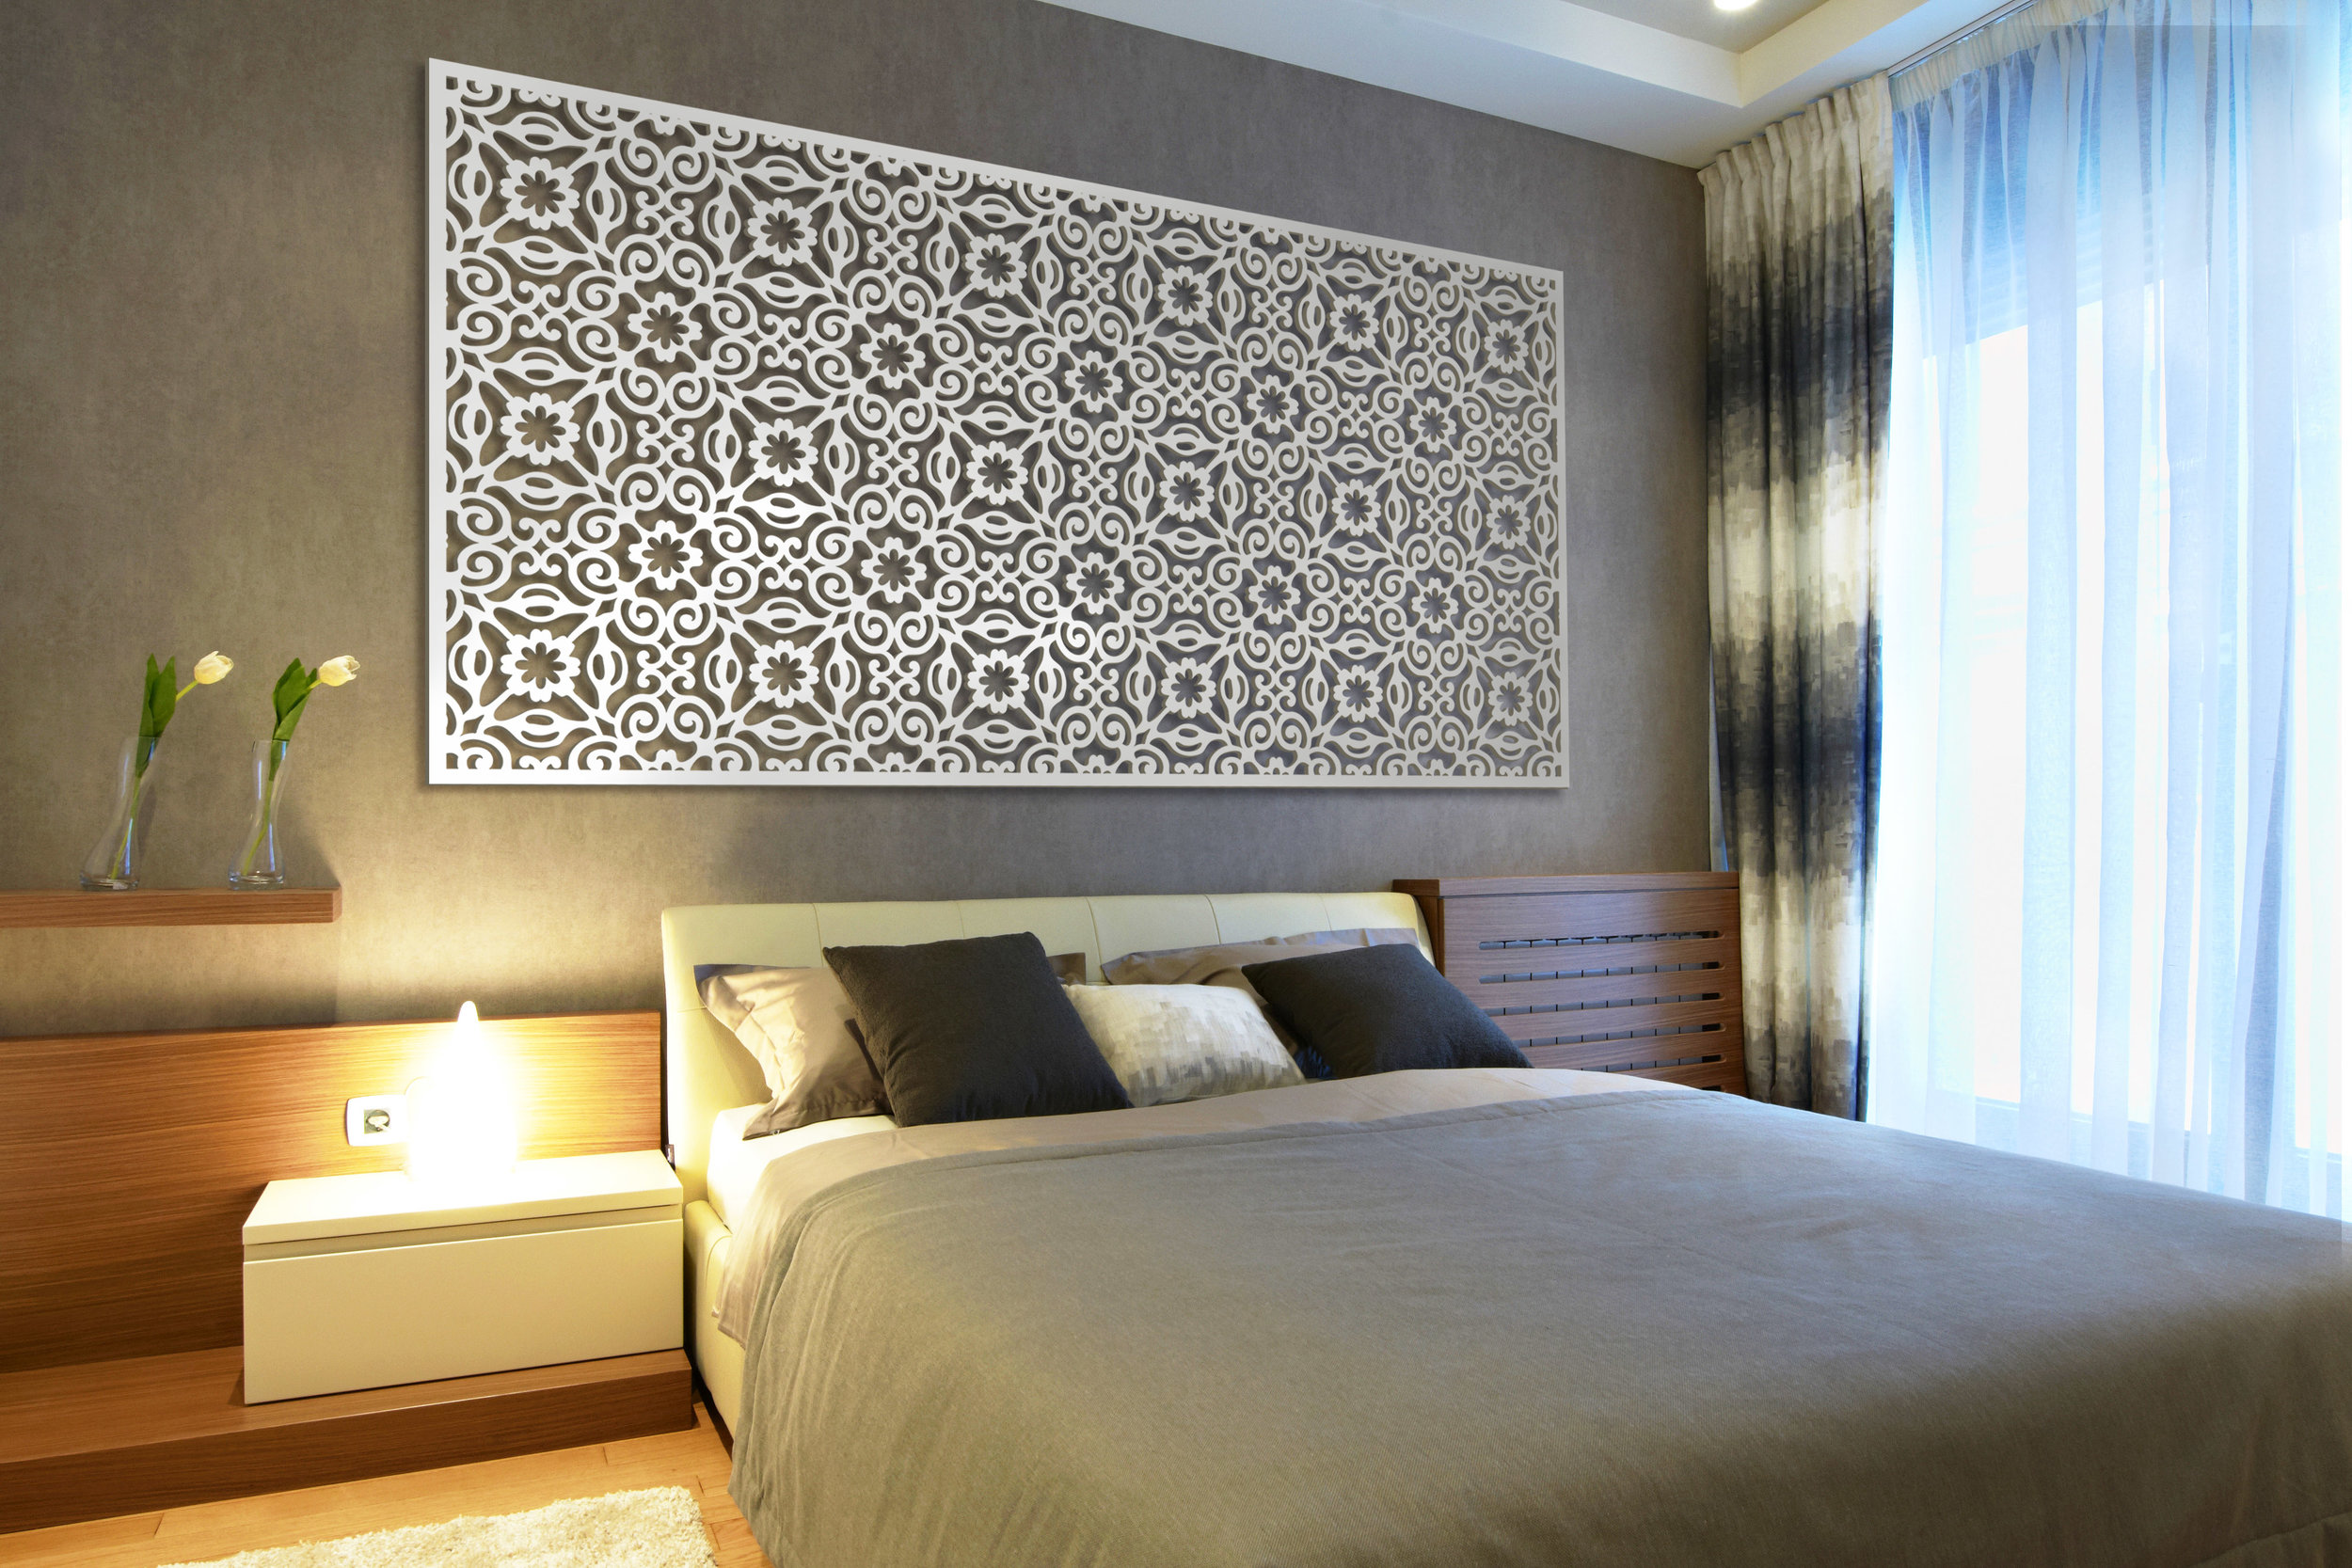 Installation Rendering C   Carmel decorative hotel wall panel - painted